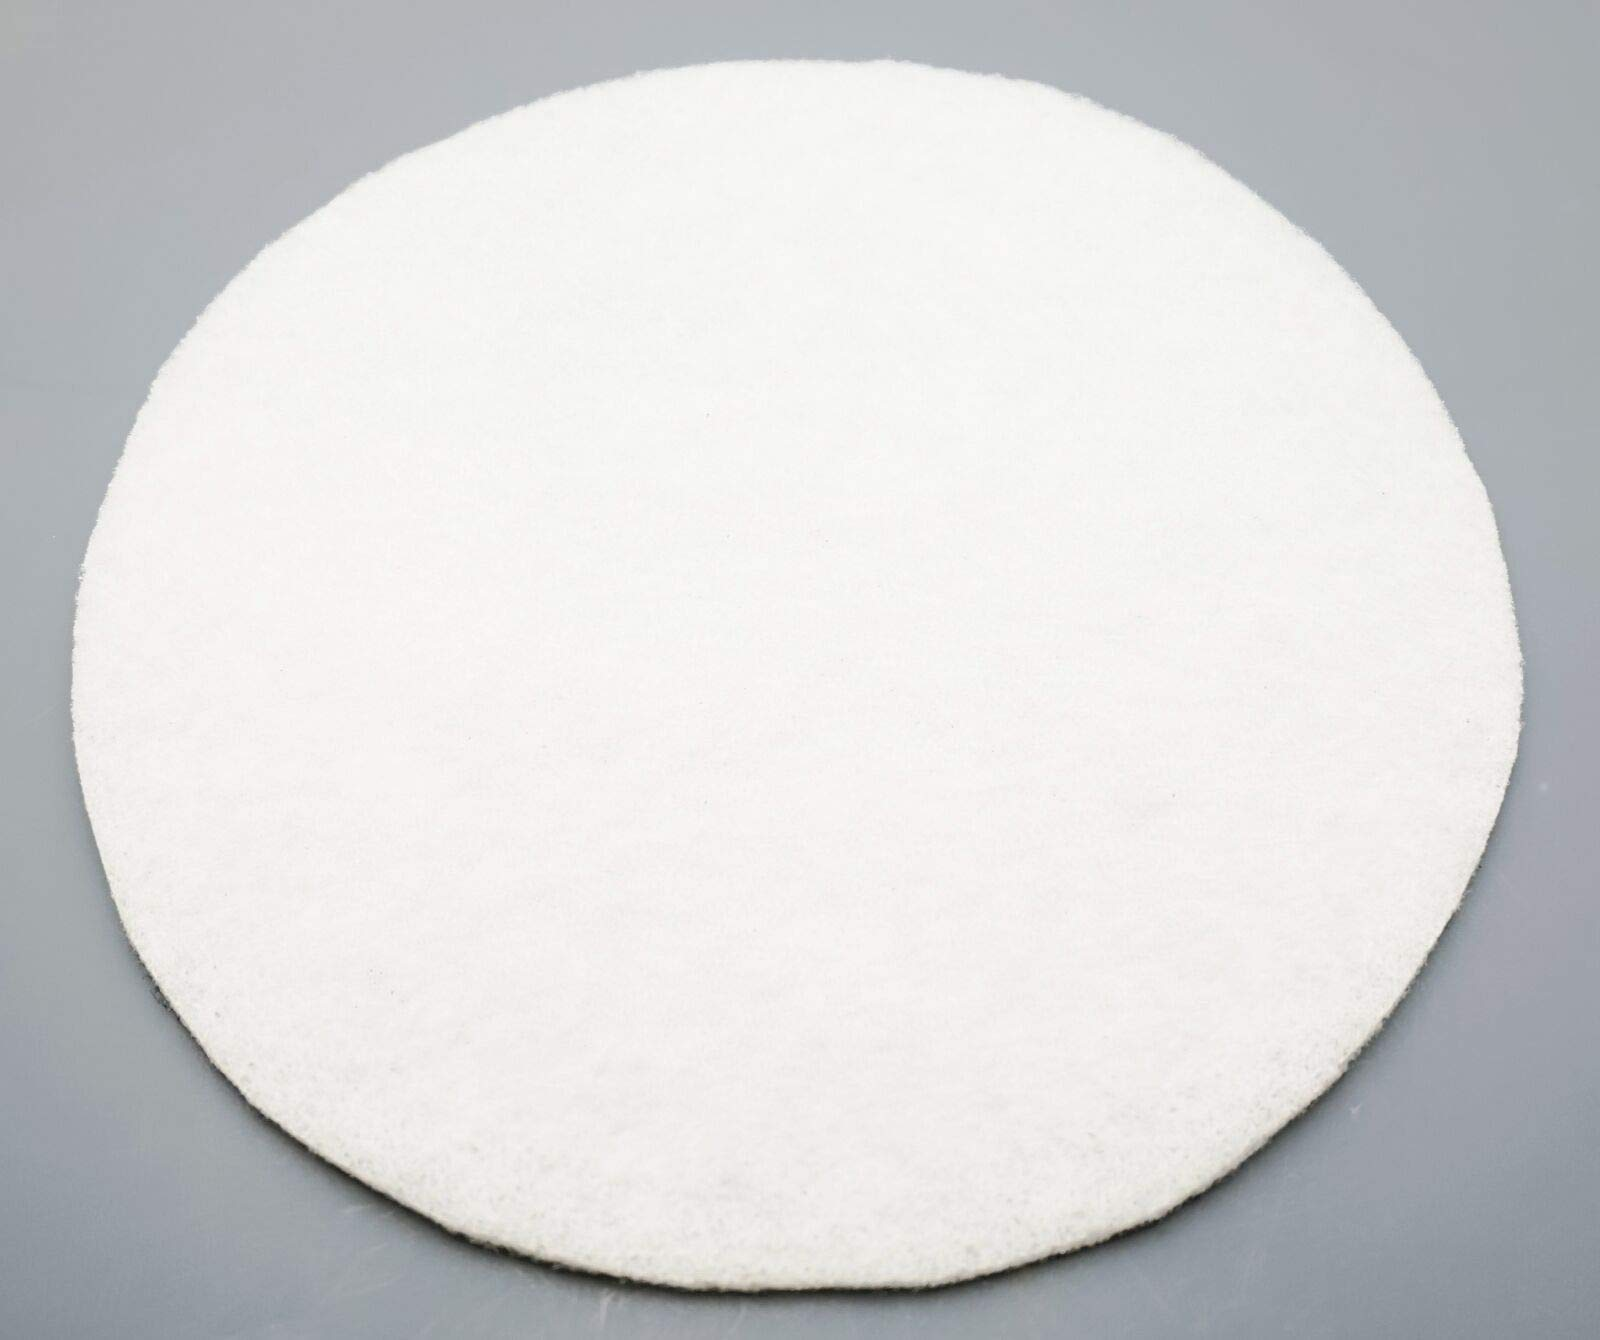 Secondary Filter for Bissell Garage Pro Wet Dry Canister Vac, 2030165 by Unknown